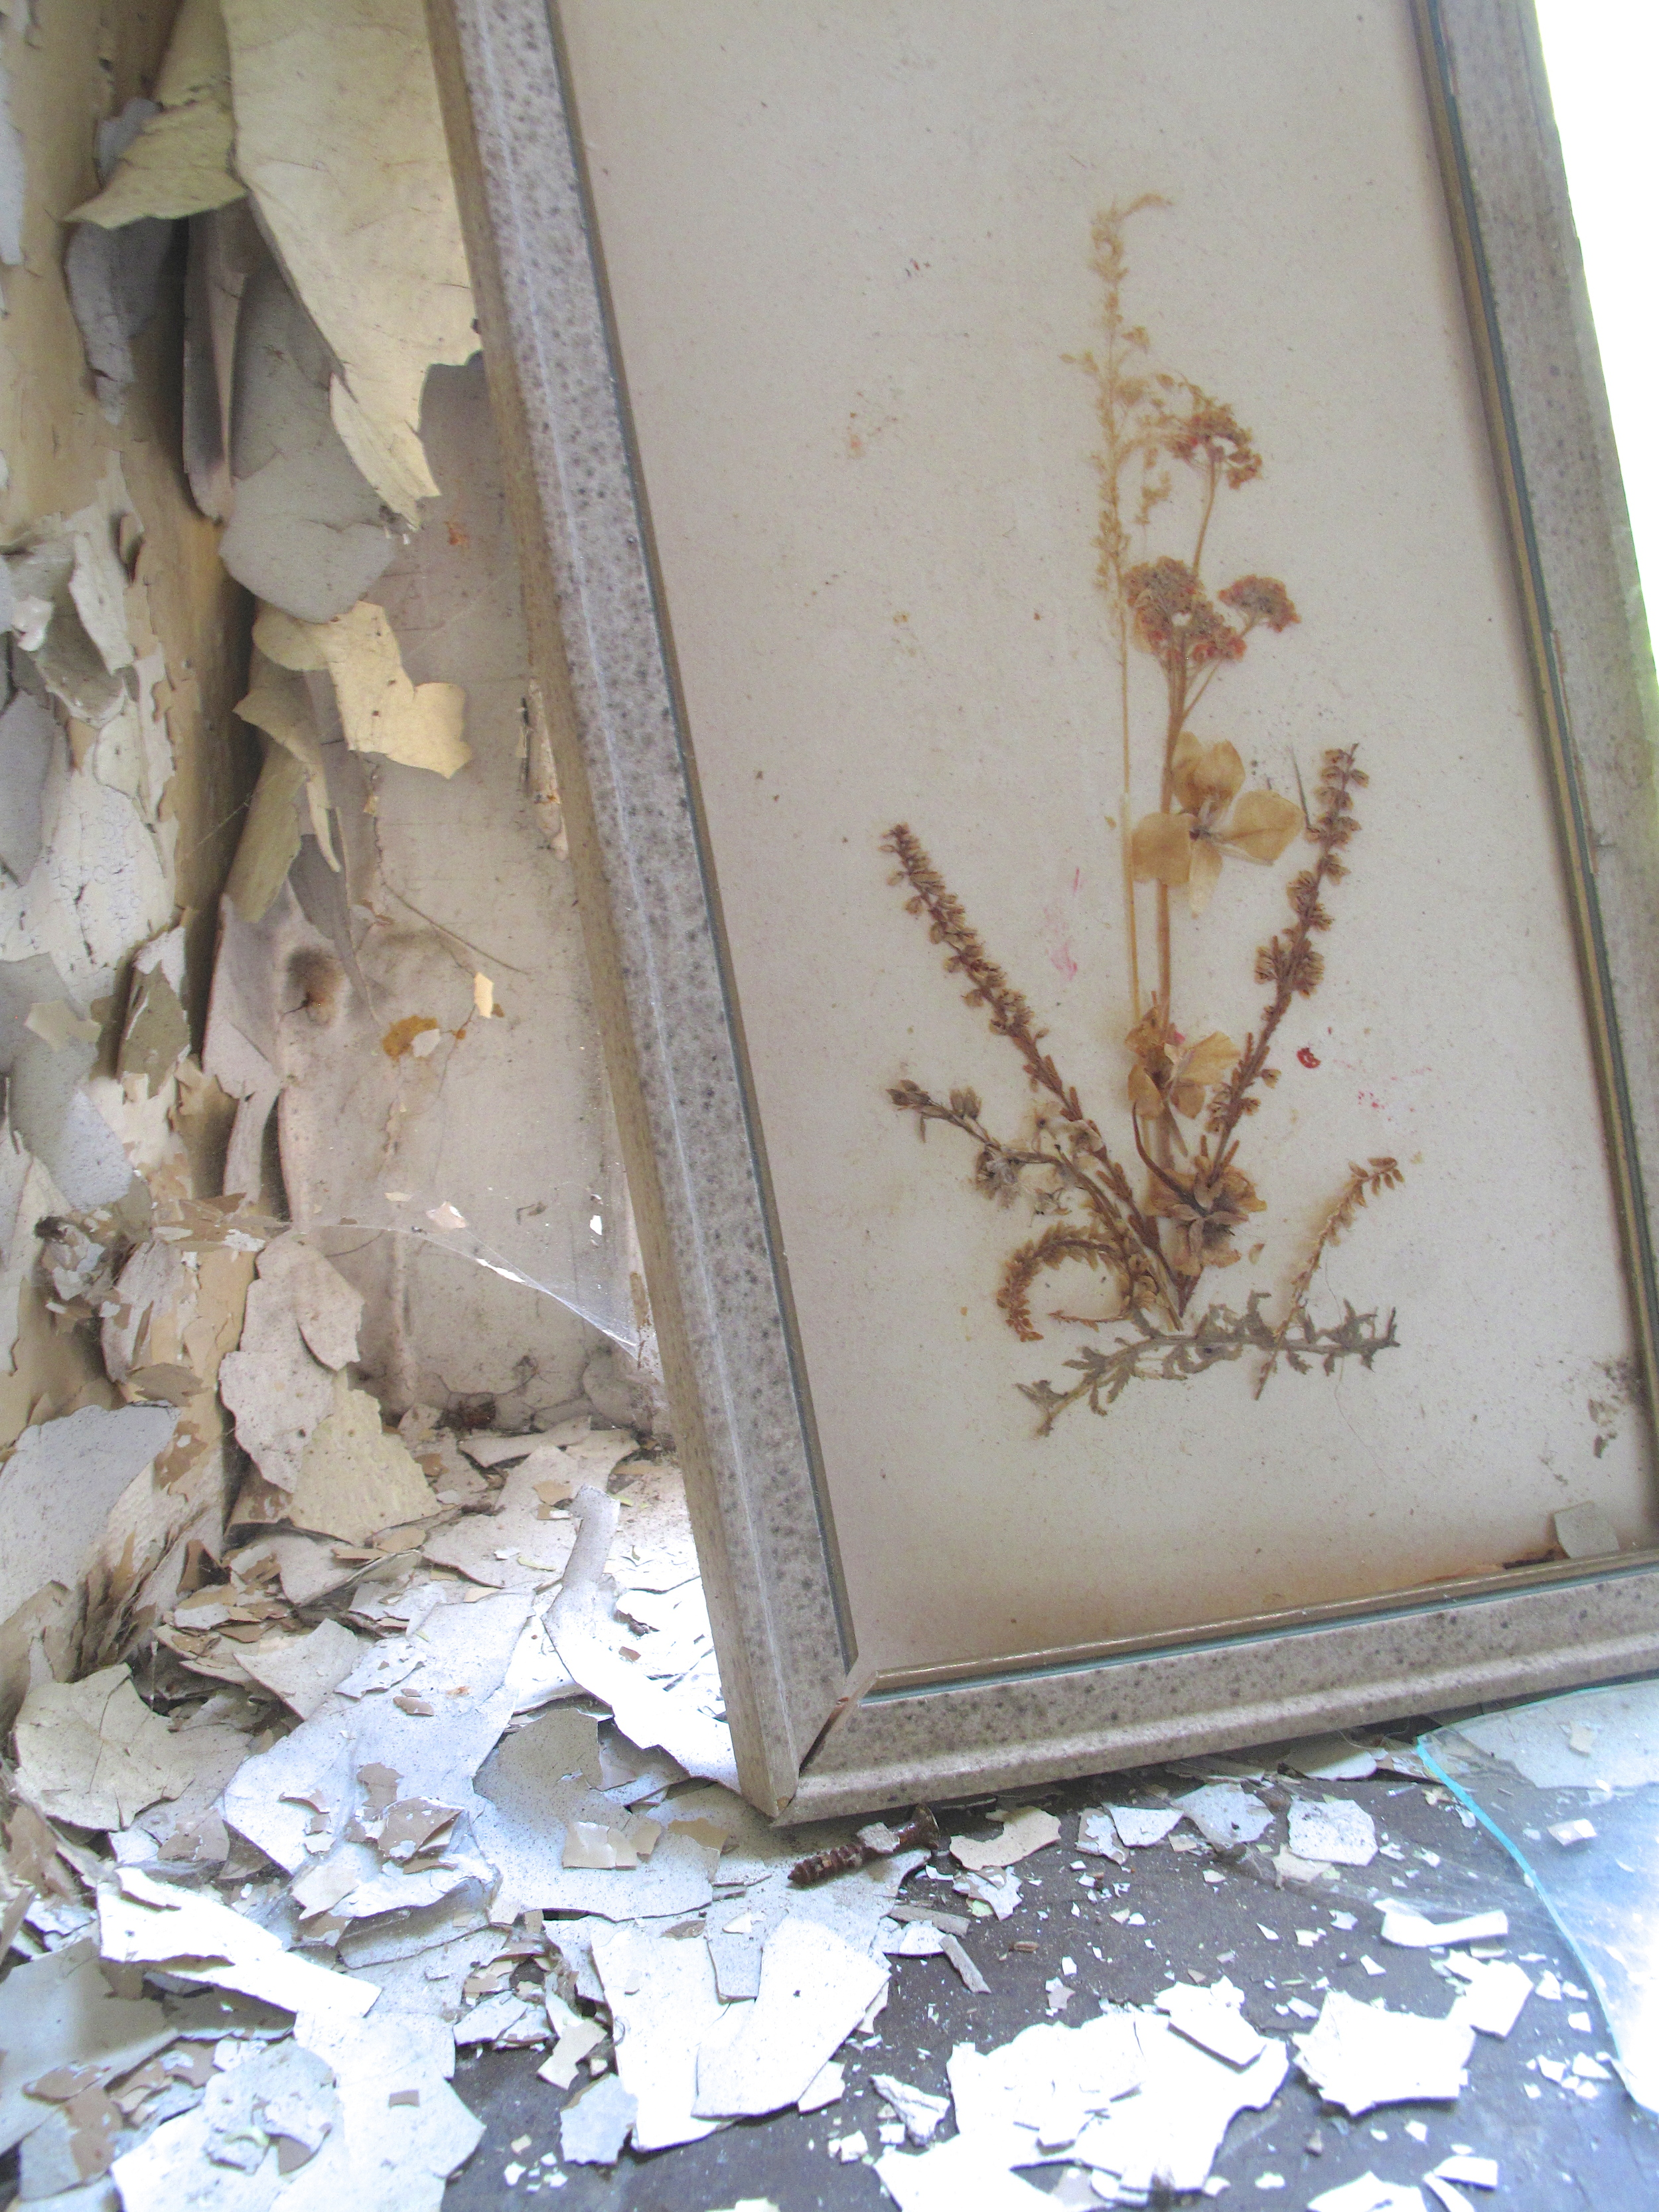 Shattered picture frame and dried flowers inside the old Elisabeth Sanatorium